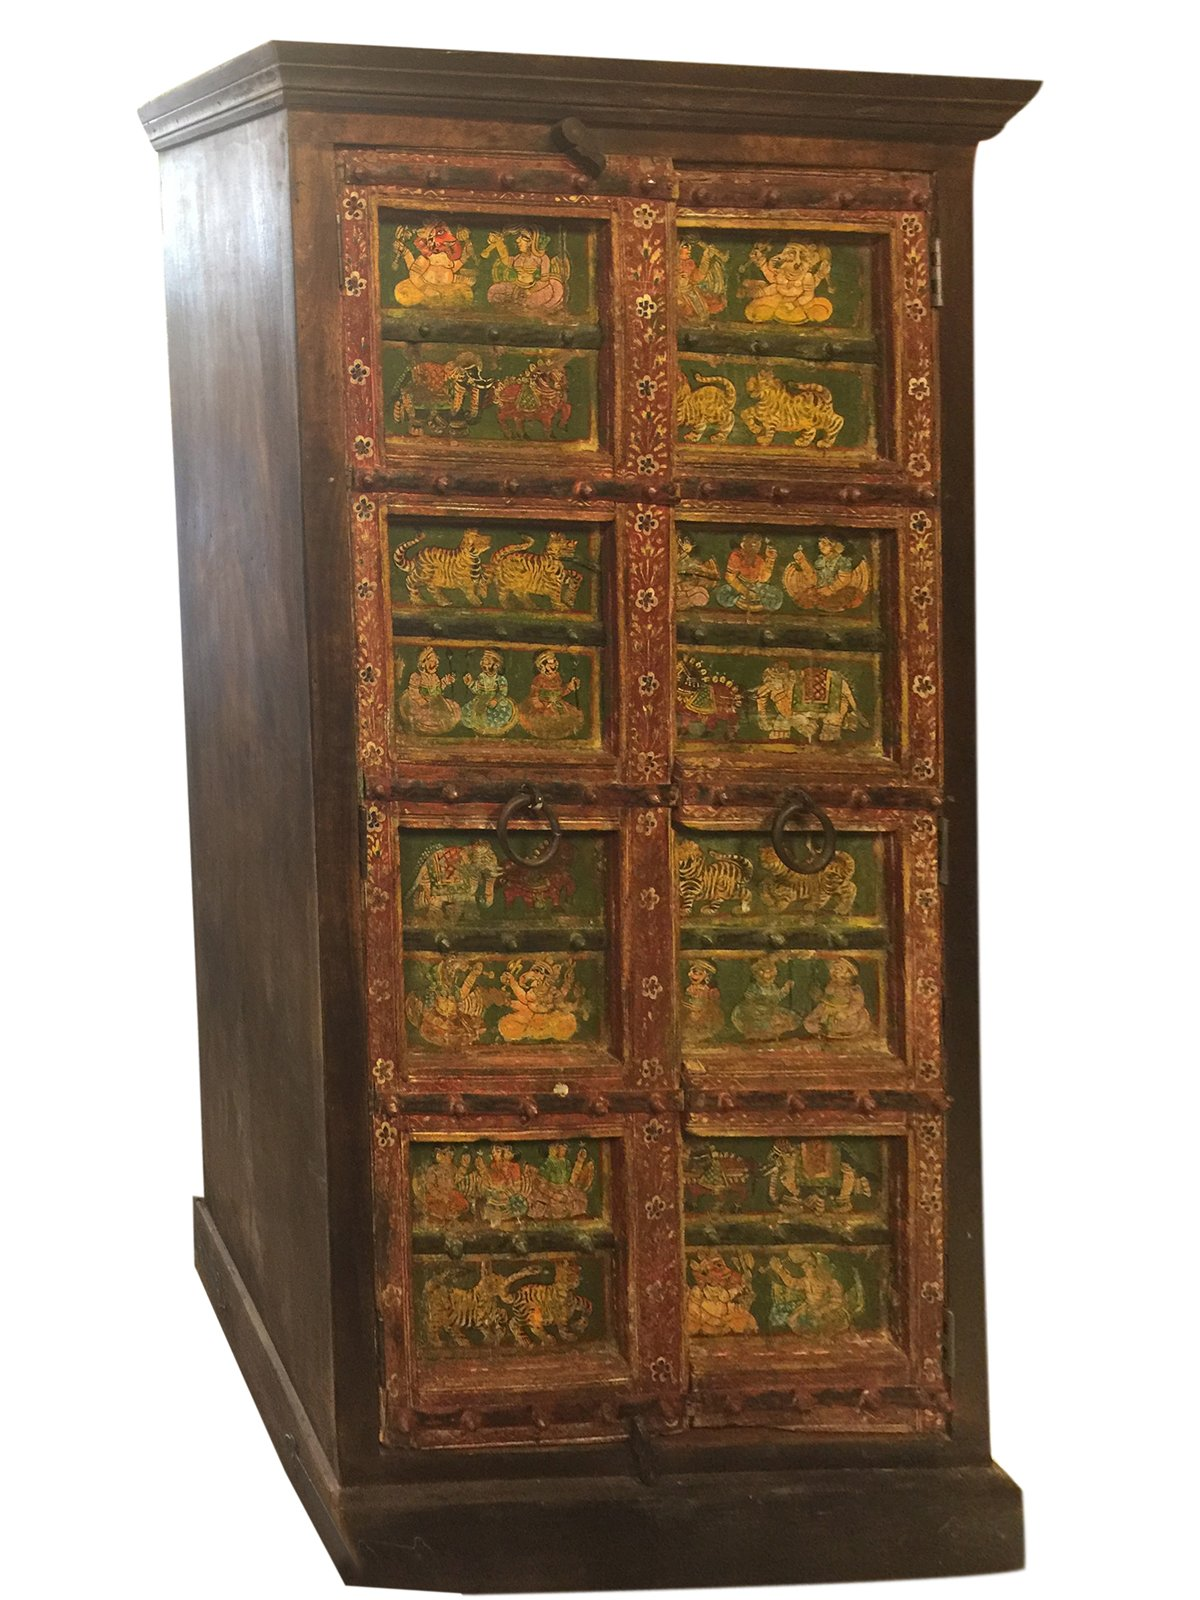 Antique Armoire Cabinet Chest Ganesha Hand Painted Ancient Indian Art Design Decor